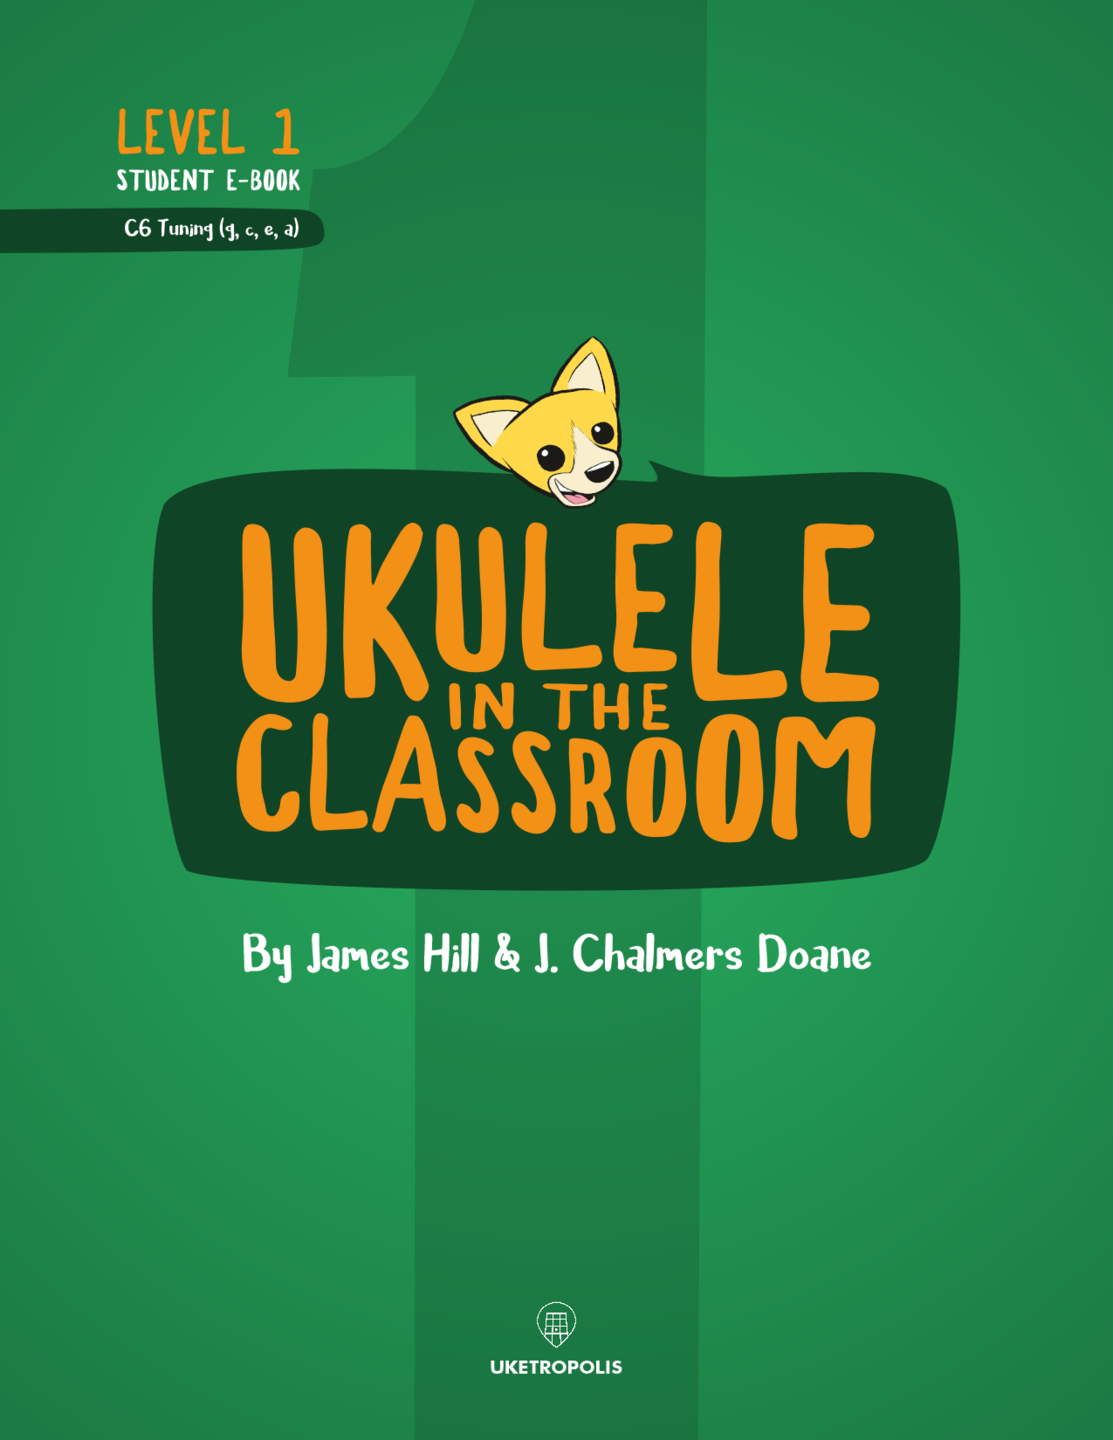 Ukulele in the Classroom Level 1